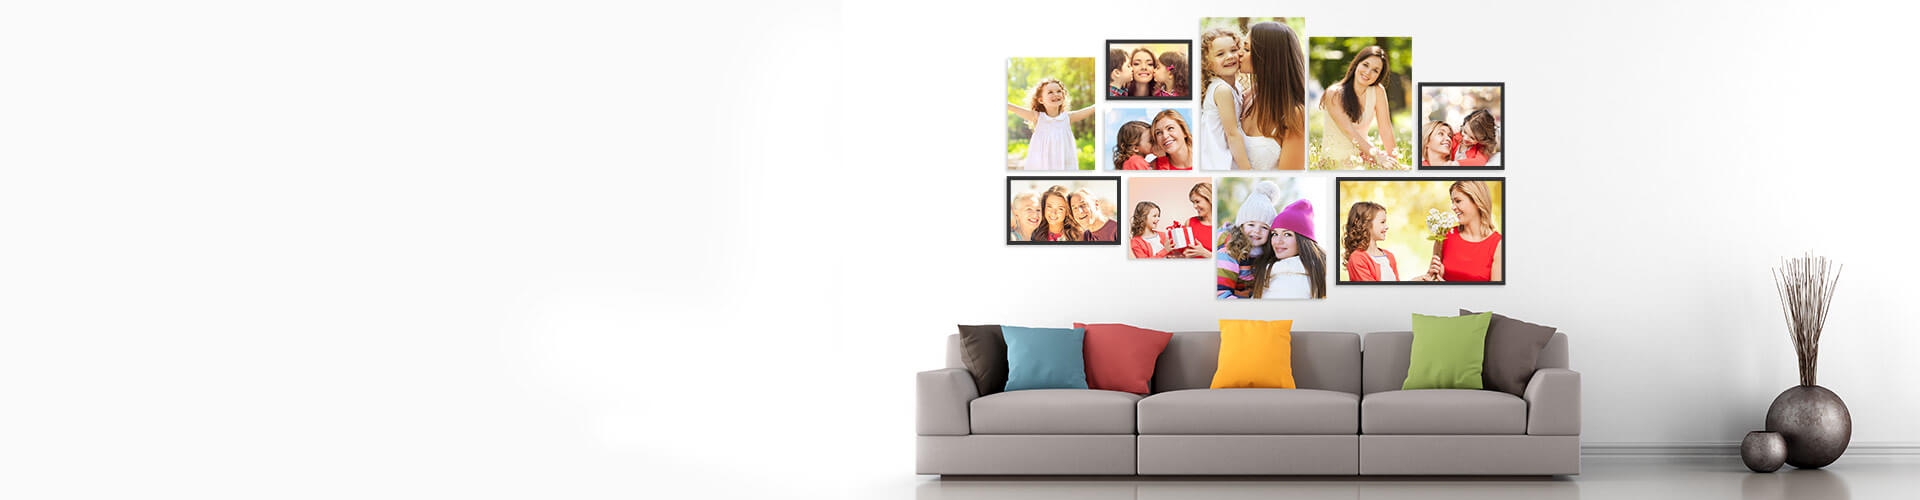 Personalized mother's day gifts